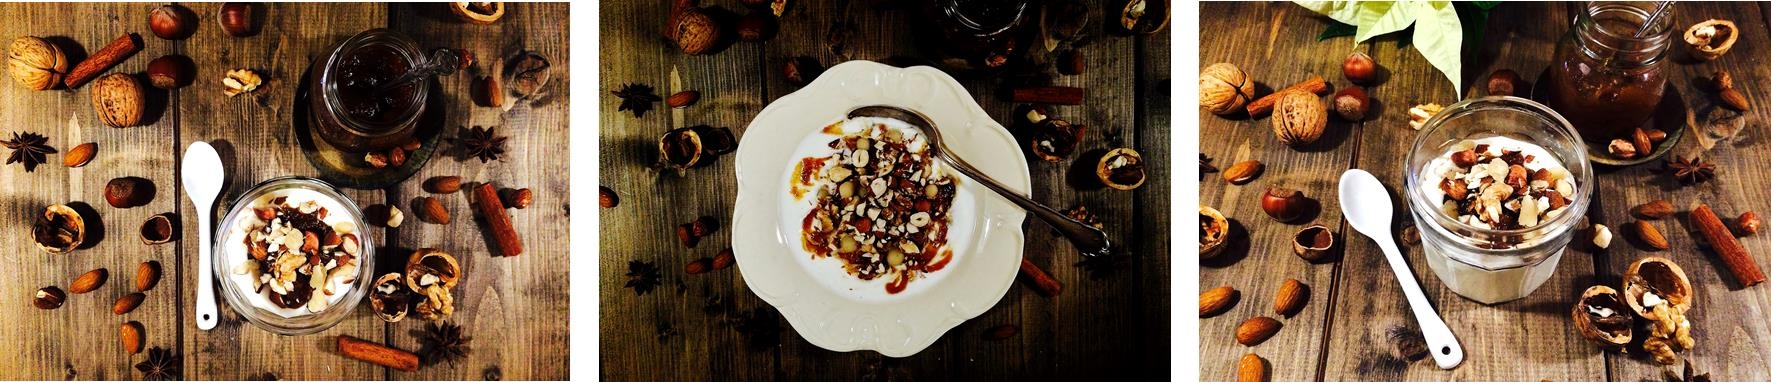 Yogurt, nuts and Christmas spiced apple chutney trio